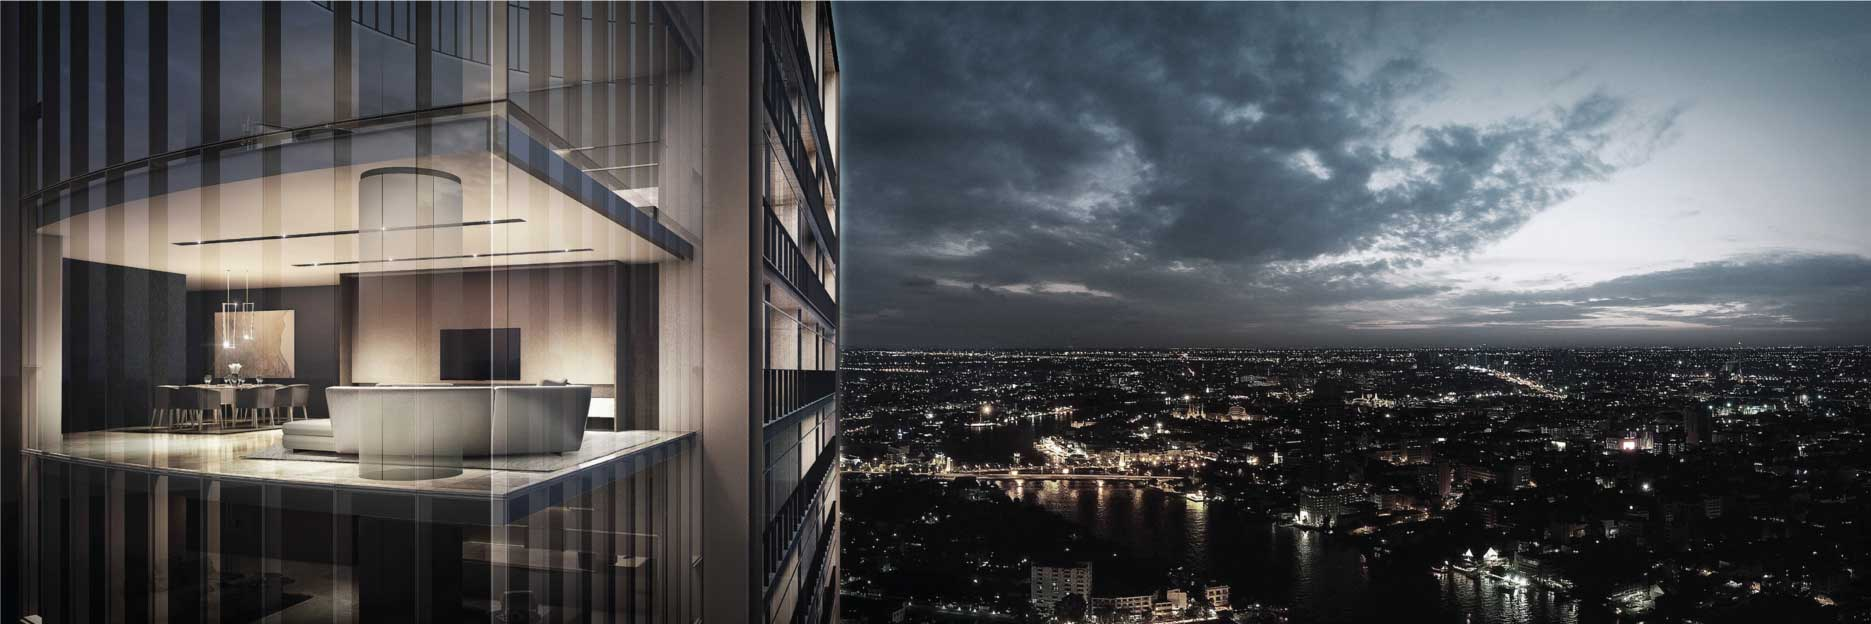 Banyan Tree Residences Riverside Bangkok Brochure 15